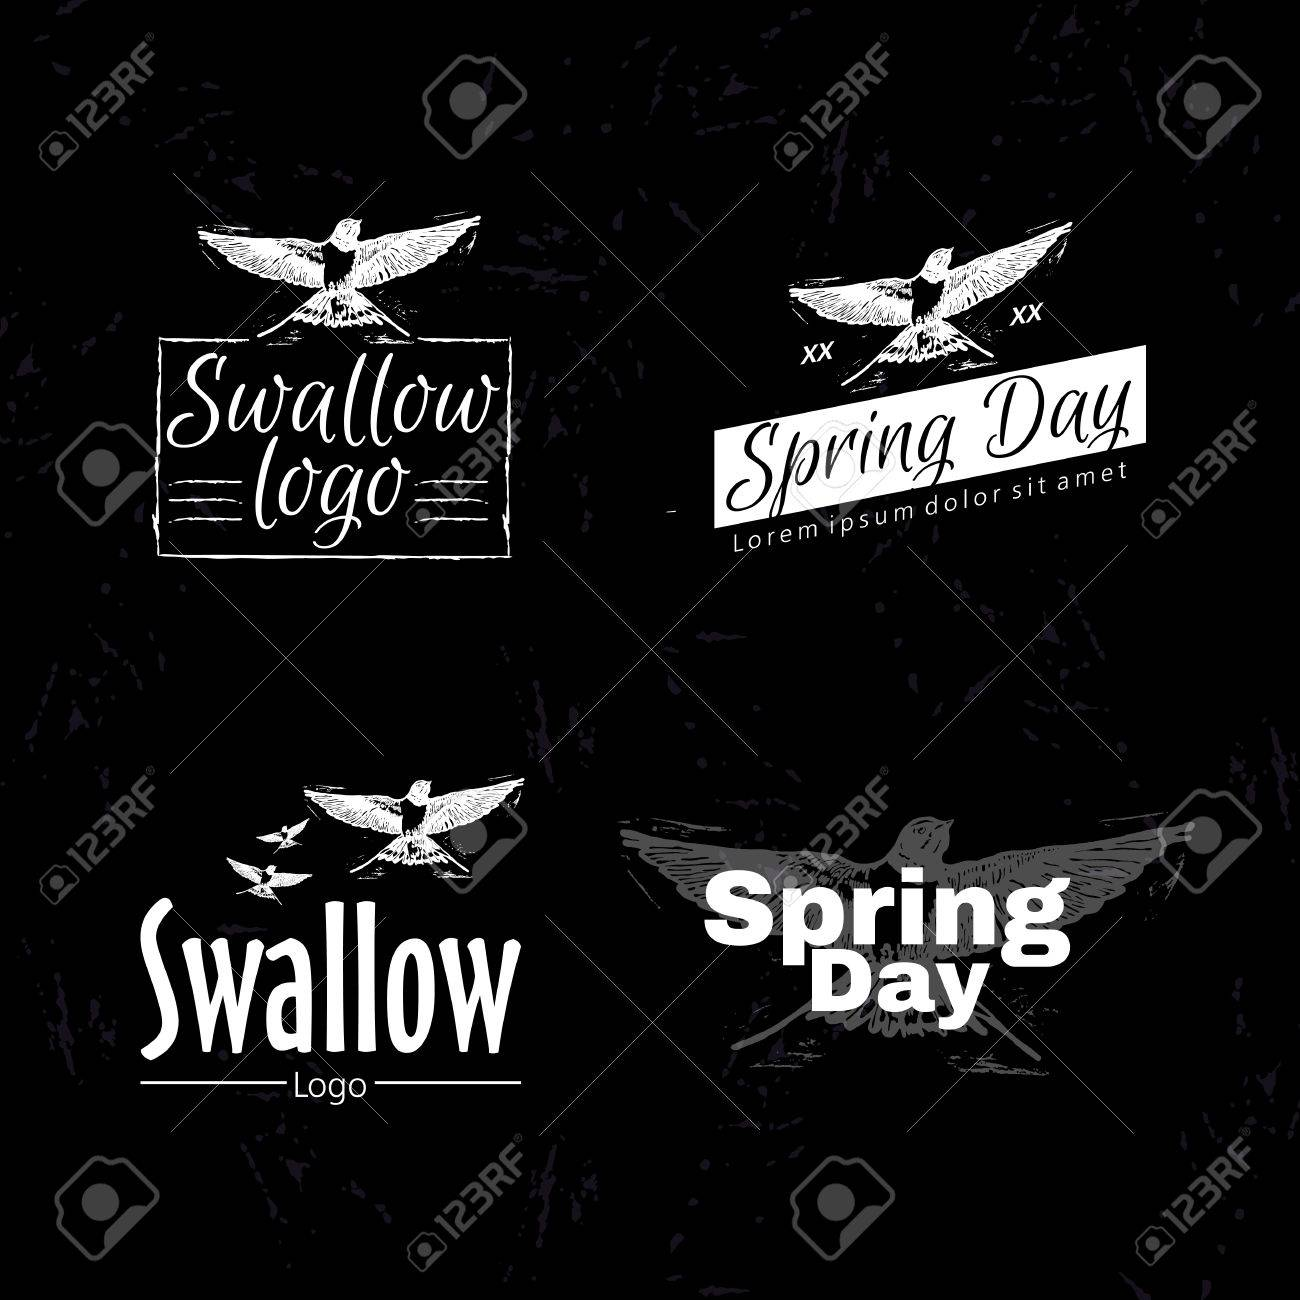 swallow or martlet bird as main element of logotype on black royalty free cliparts vectors and stock illustration image 54946765 123rf com